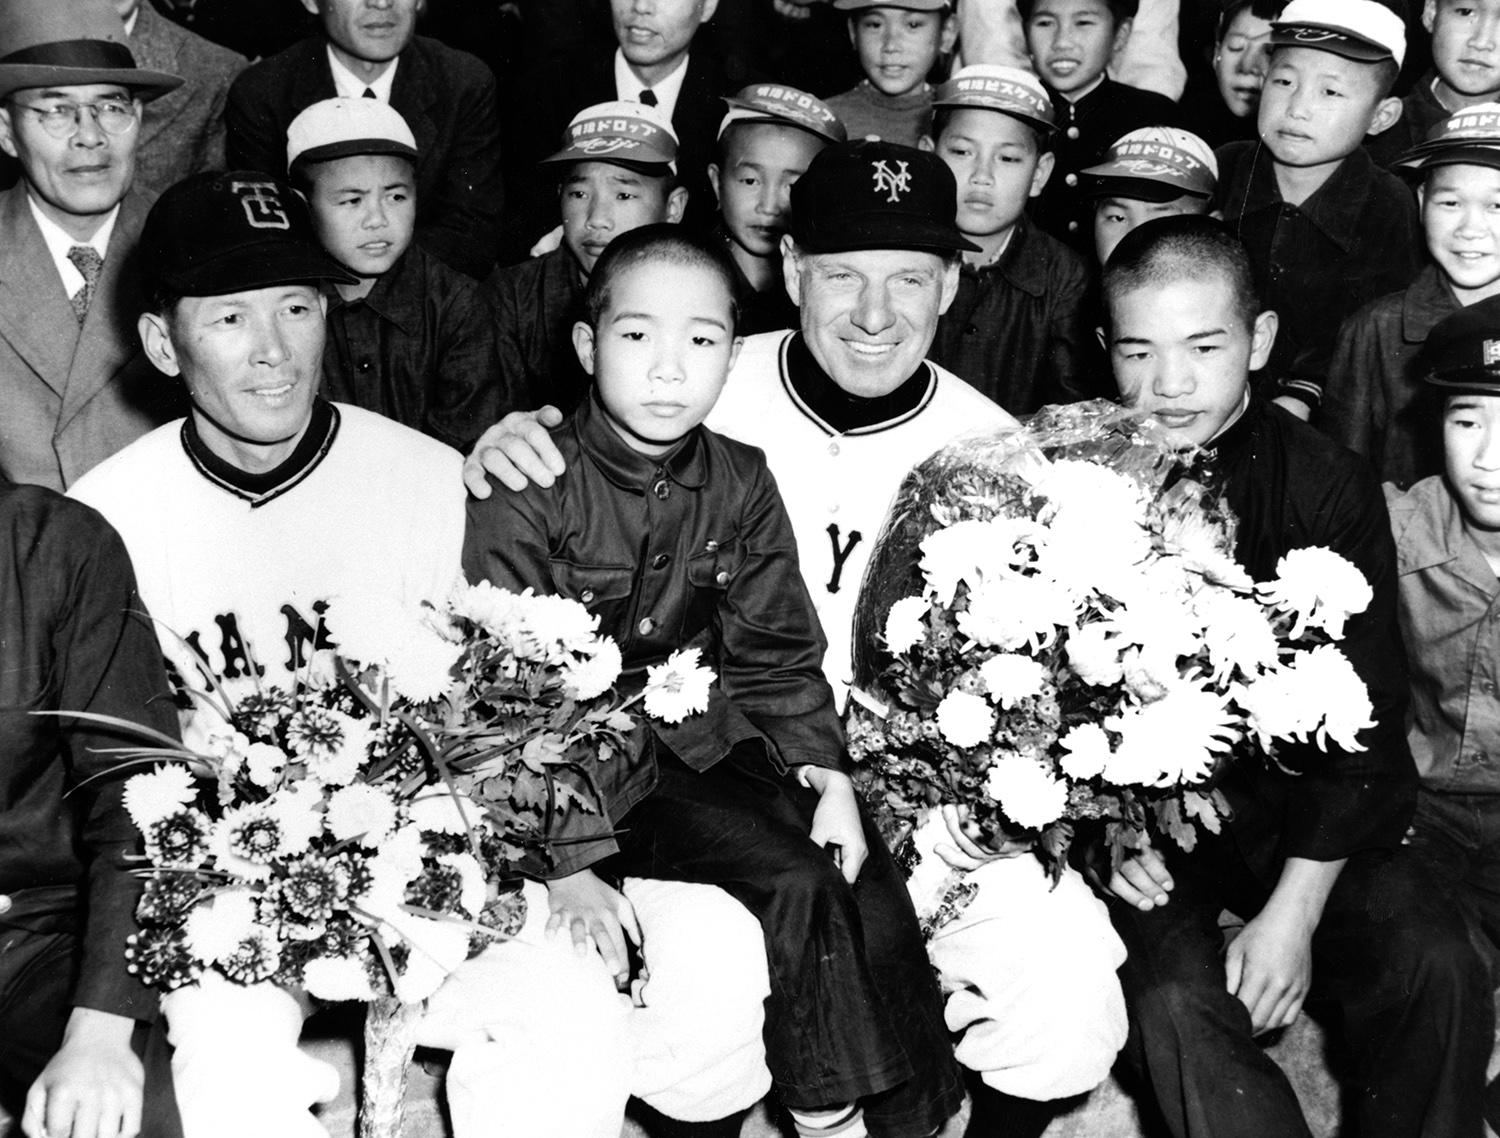 """New York Giants manager Leo Durocher said the Japanese """"play fine baseball"""" after returning from the 1953 tour of Japan. <a href=""""http://collection.baseballhall.org/islandora/object/islandora%3A273613"""">PASTIME</a> (National Baseball Hall of Fame)"""